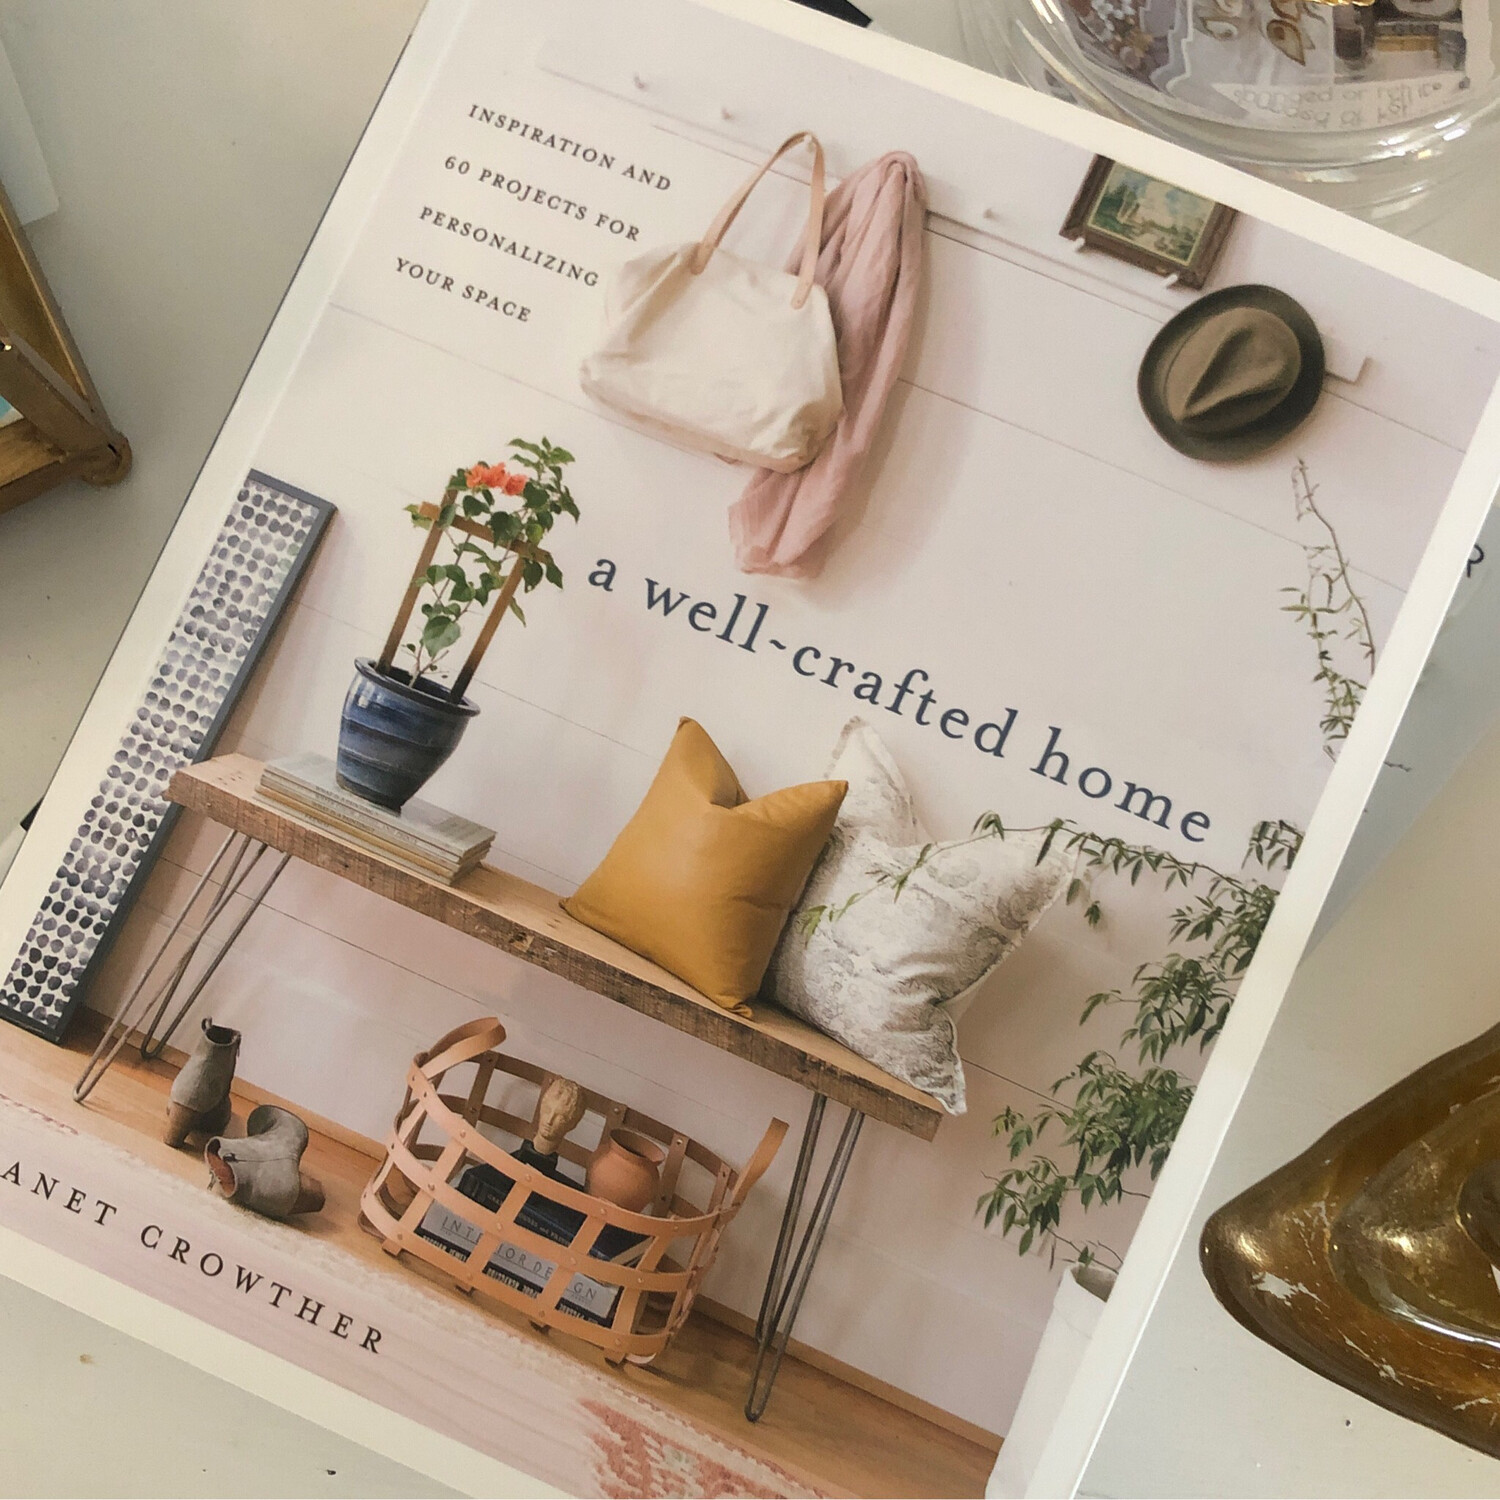 Well Crafted Home Book